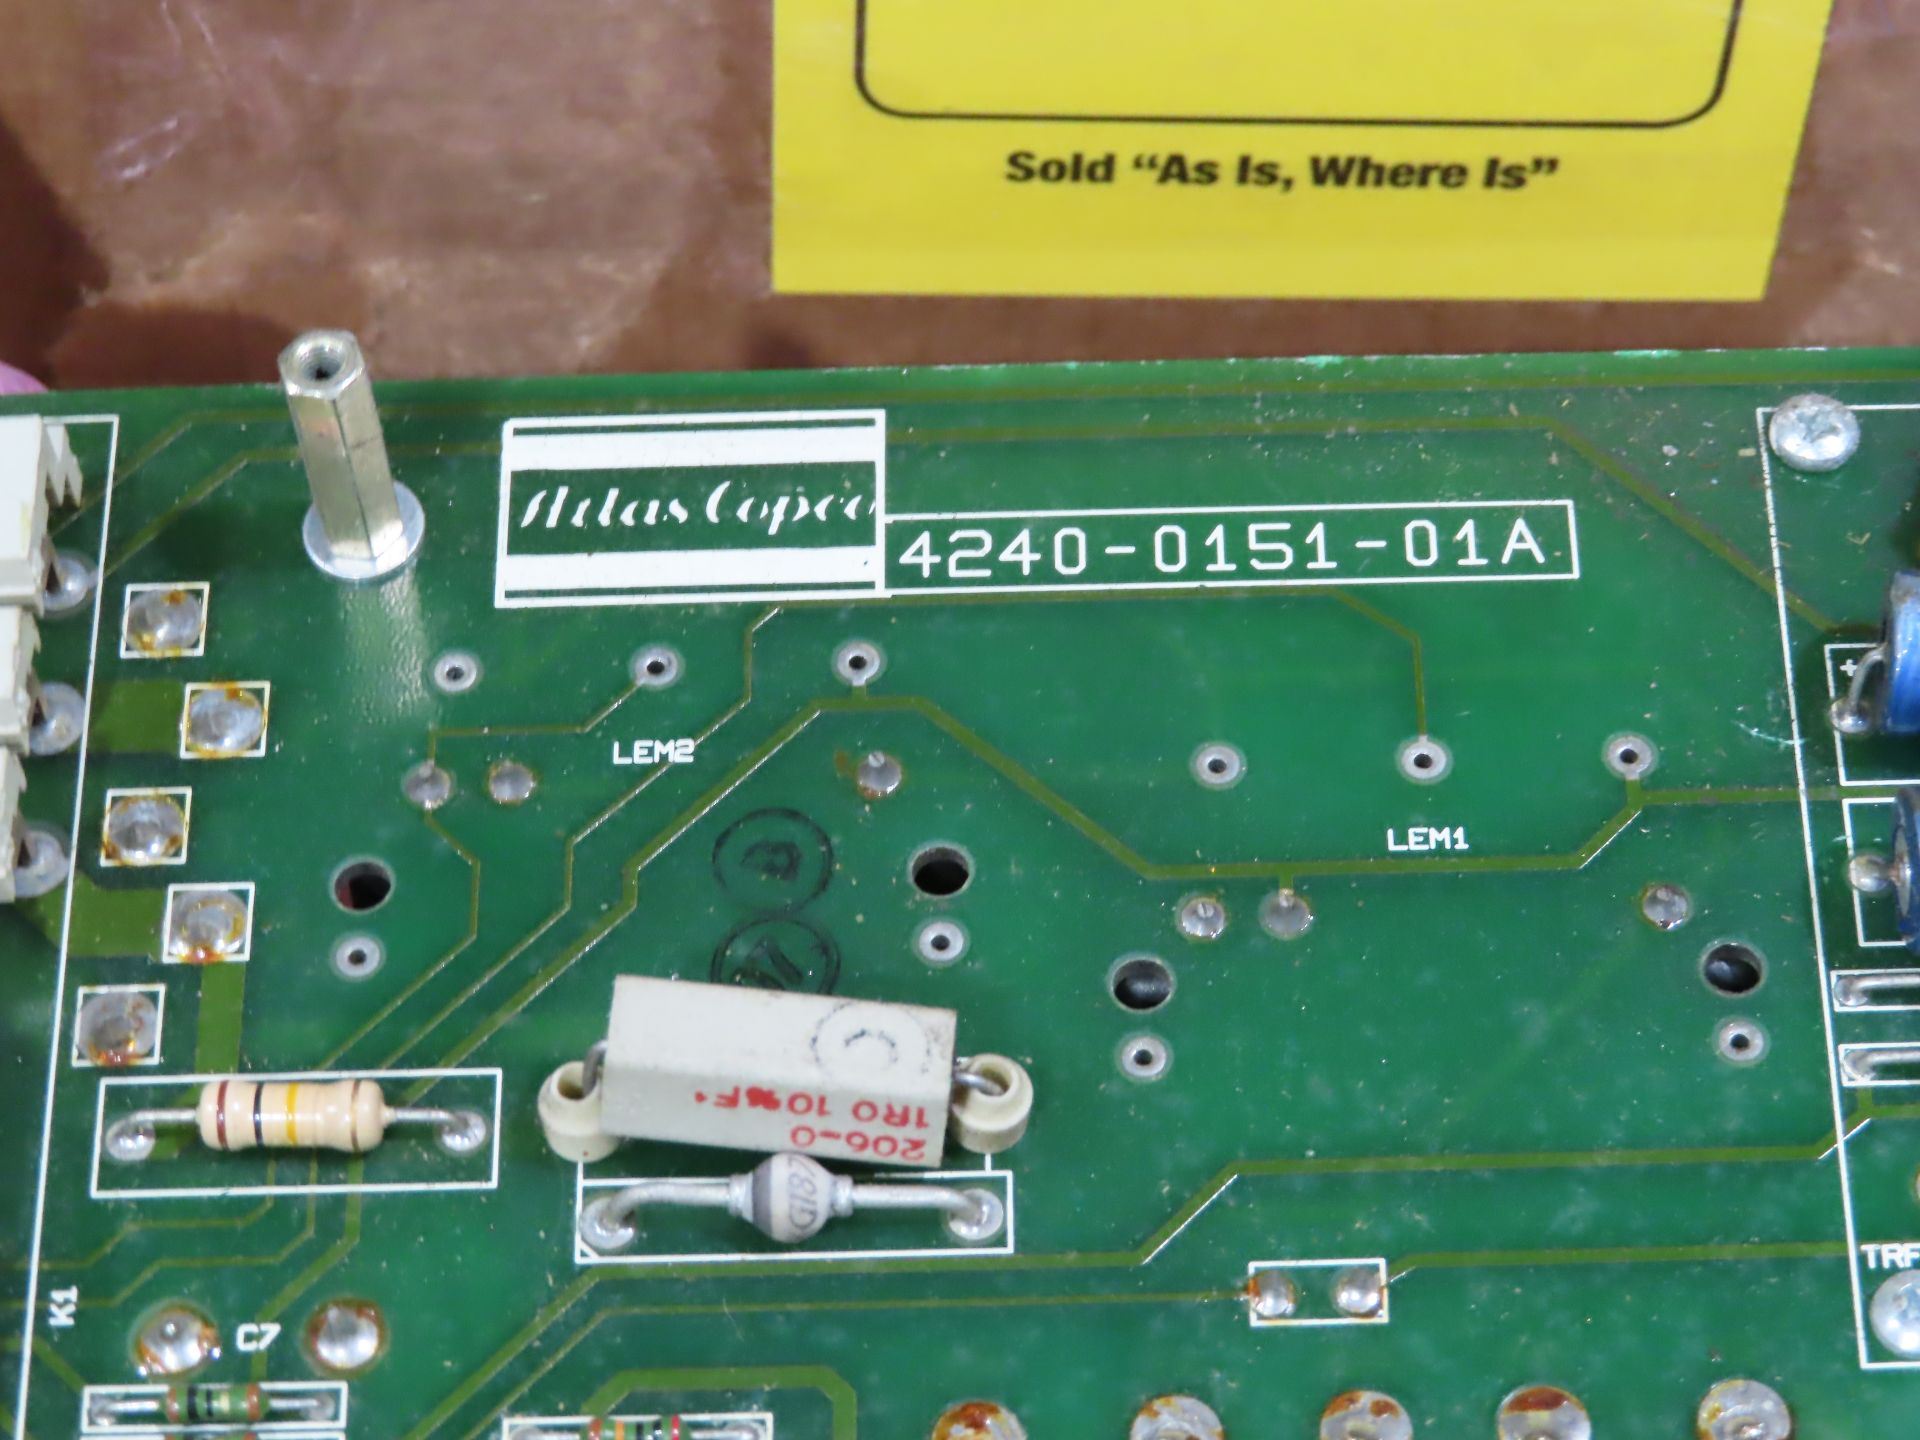 Lot 52 - Qty 3 Altas Copco model 4240-0151-01A replacement servo amp replacement board, as always, with